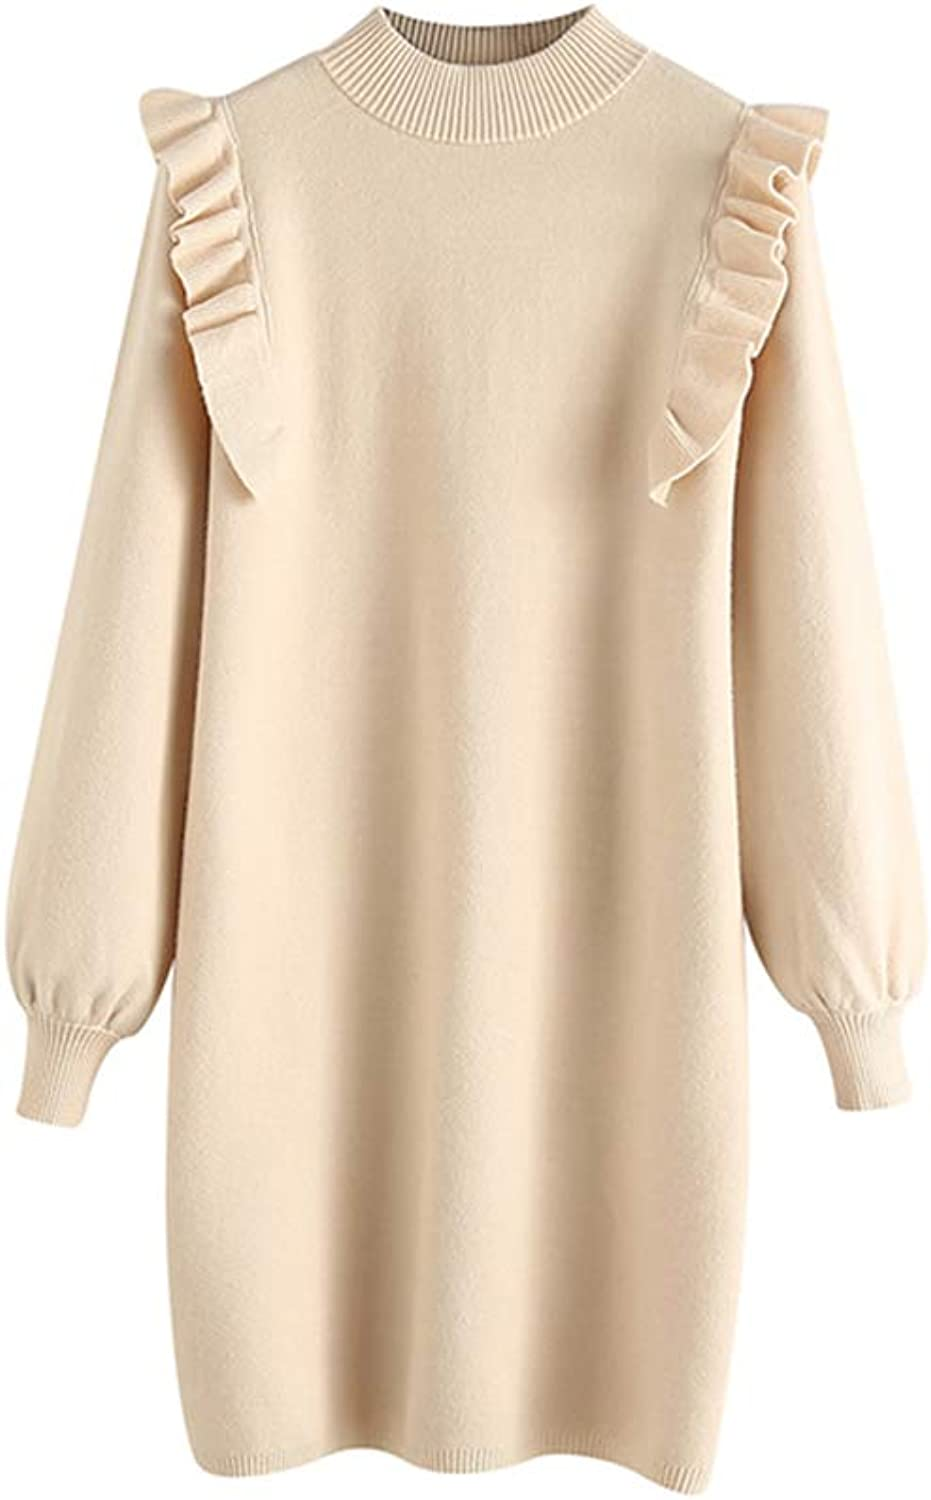 Women's Round Neck Wooden Ear Dress Sweater Dress Female Autumn and Winter Loose Slim Knit Dress (color   Beige, Size   F)